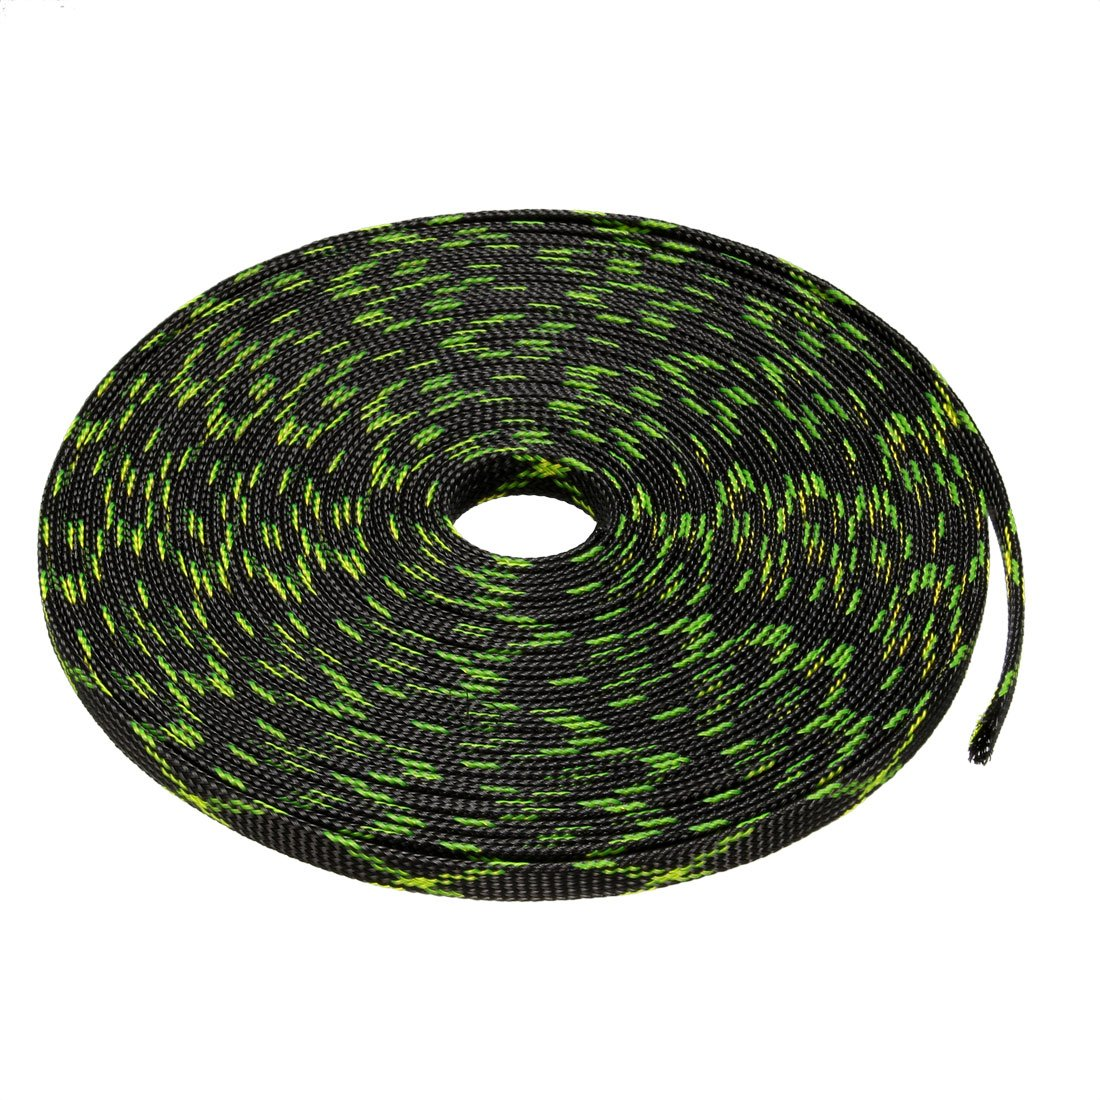 uxcell 9.84ft 3mm Dia. PET Expandable Braided Sleeving 3 Meters Cable Management Sleeve Cord Organizer for Wrap Protect Cables Green a18050400ux0147